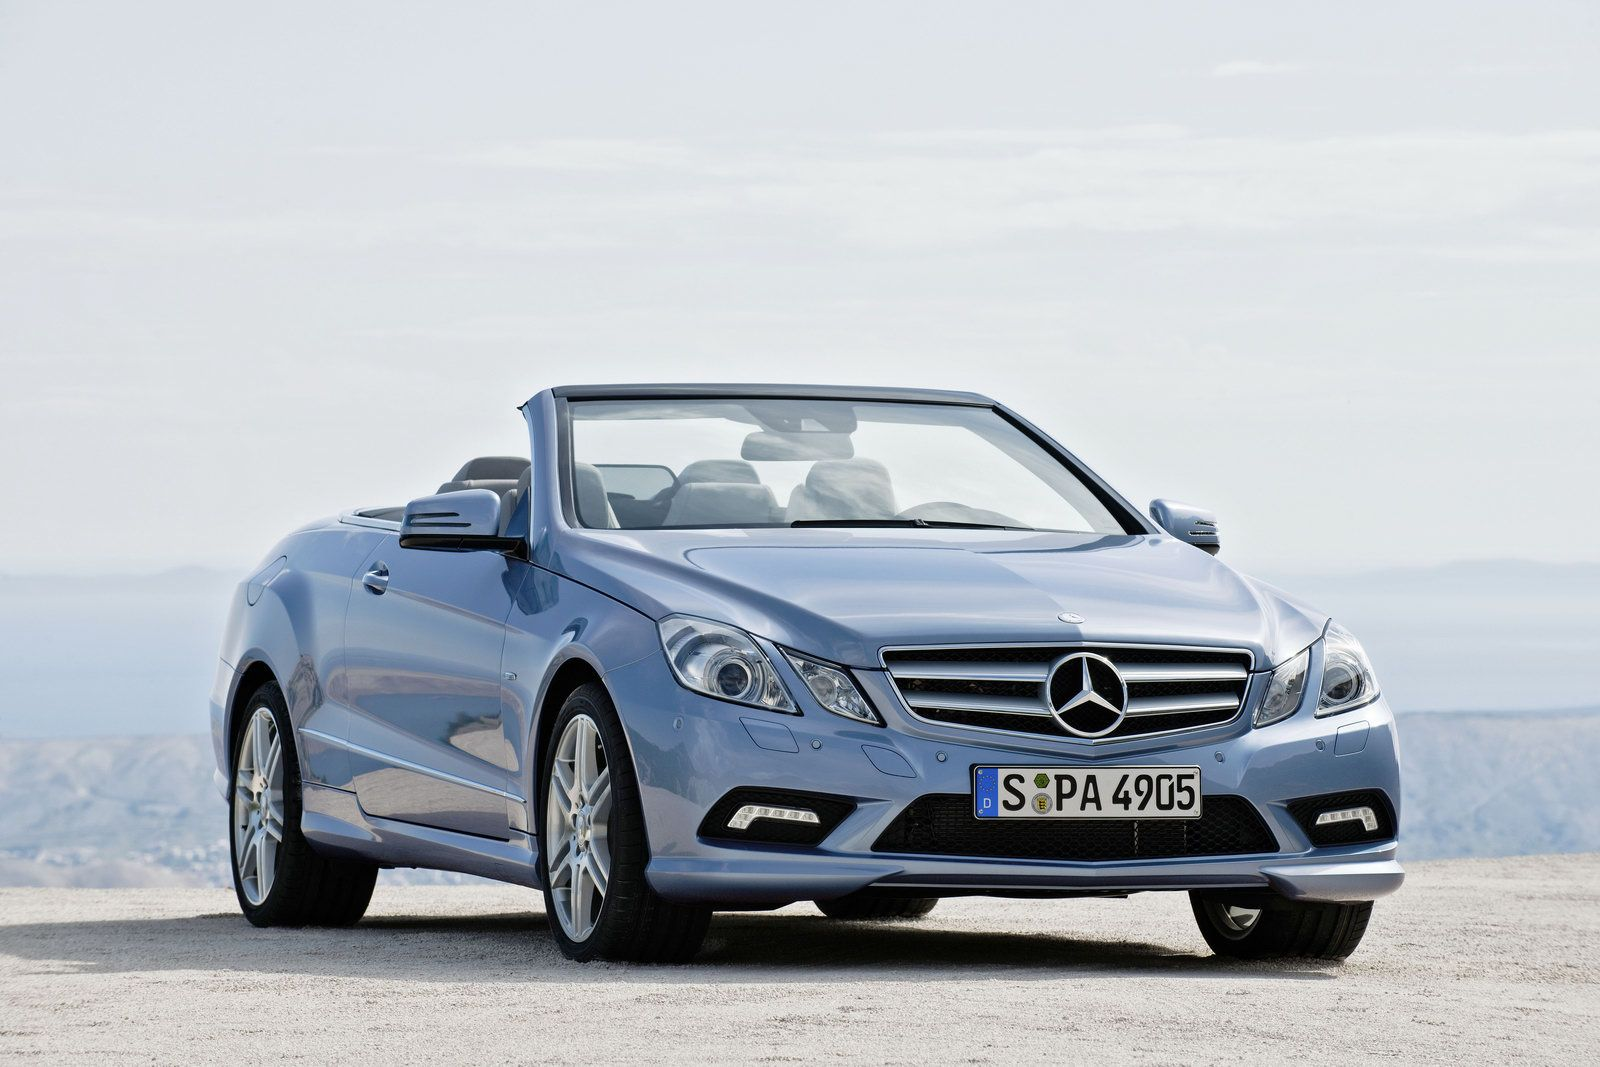 new 2010 mercedes e class convertible officially revealed. Black Bedroom Furniture Sets. Home Design Ideas